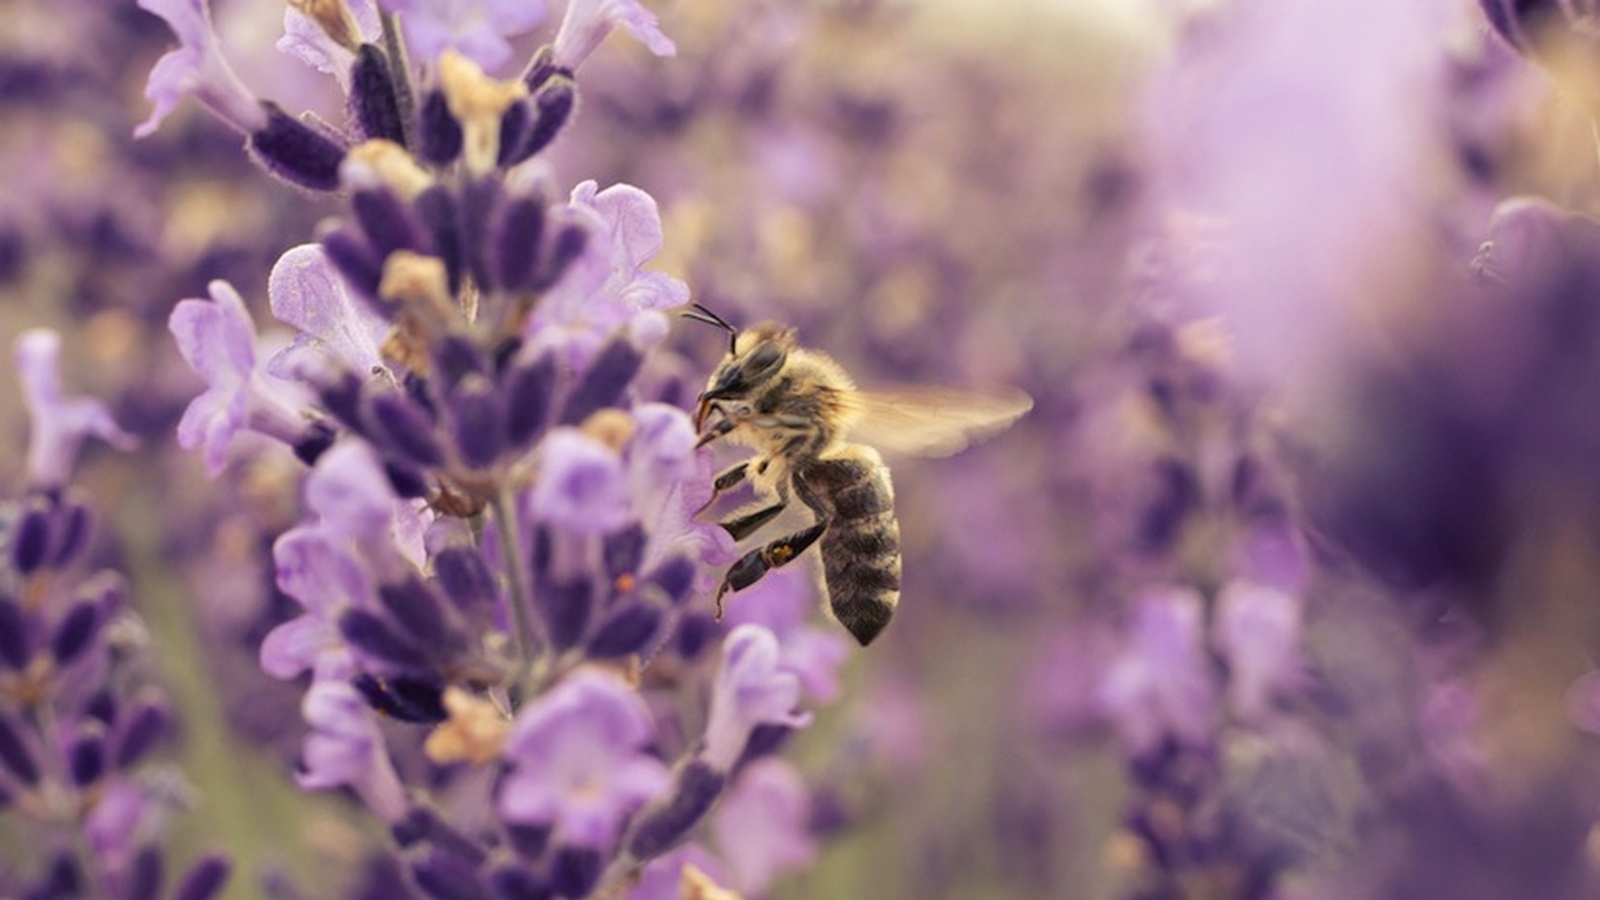 Birds, Bees and Butterflies - The Pollinators Keeping Us Healthy